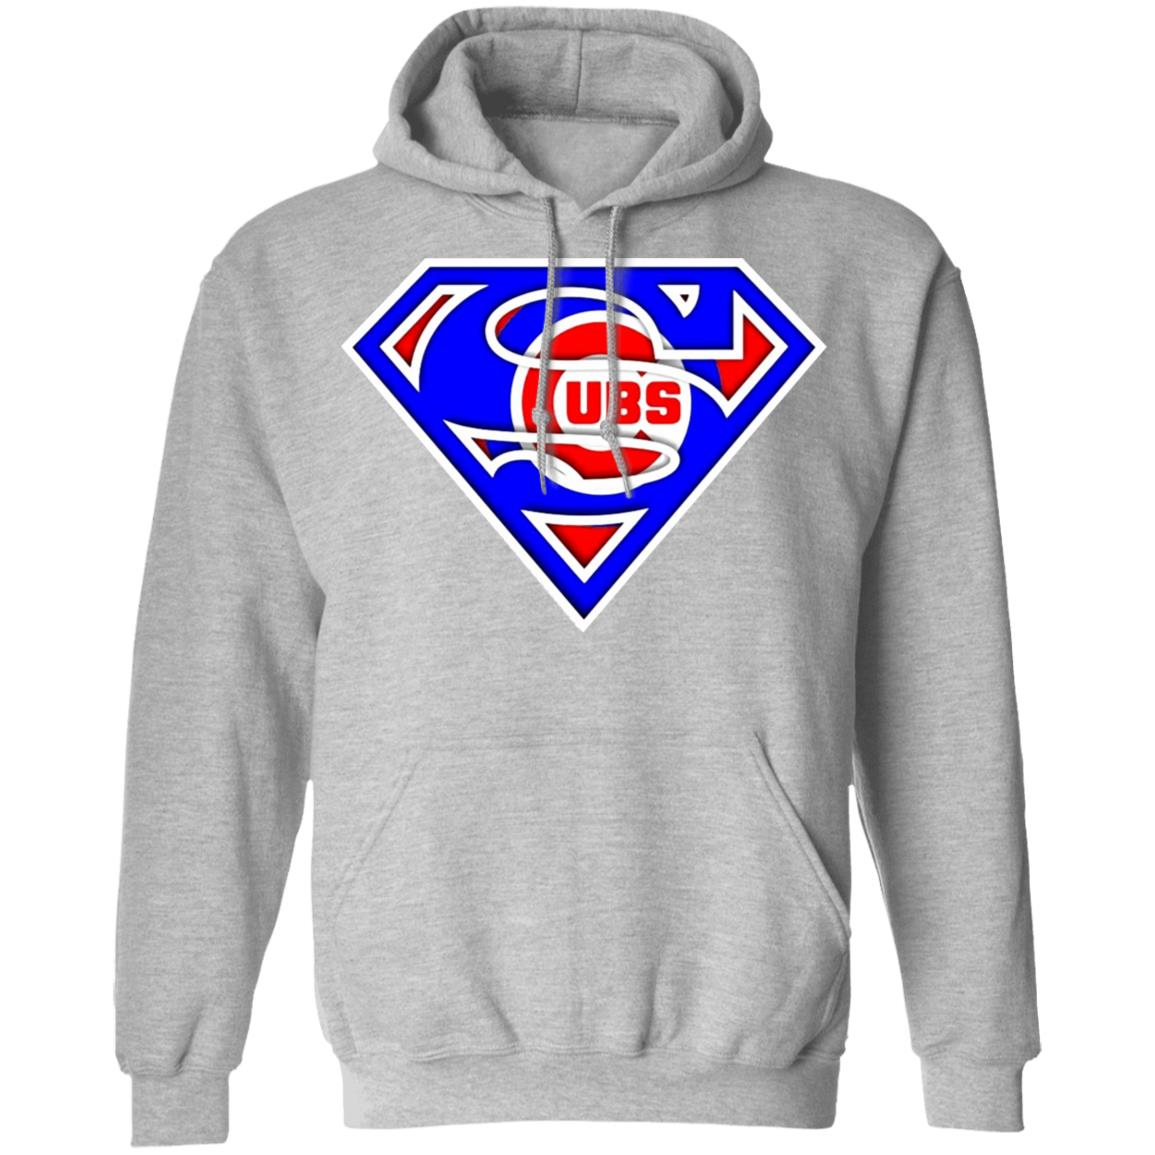 Superman Styles Cubs Collection Designs T-shirt G185 Pullover Hoodie 8 oz.